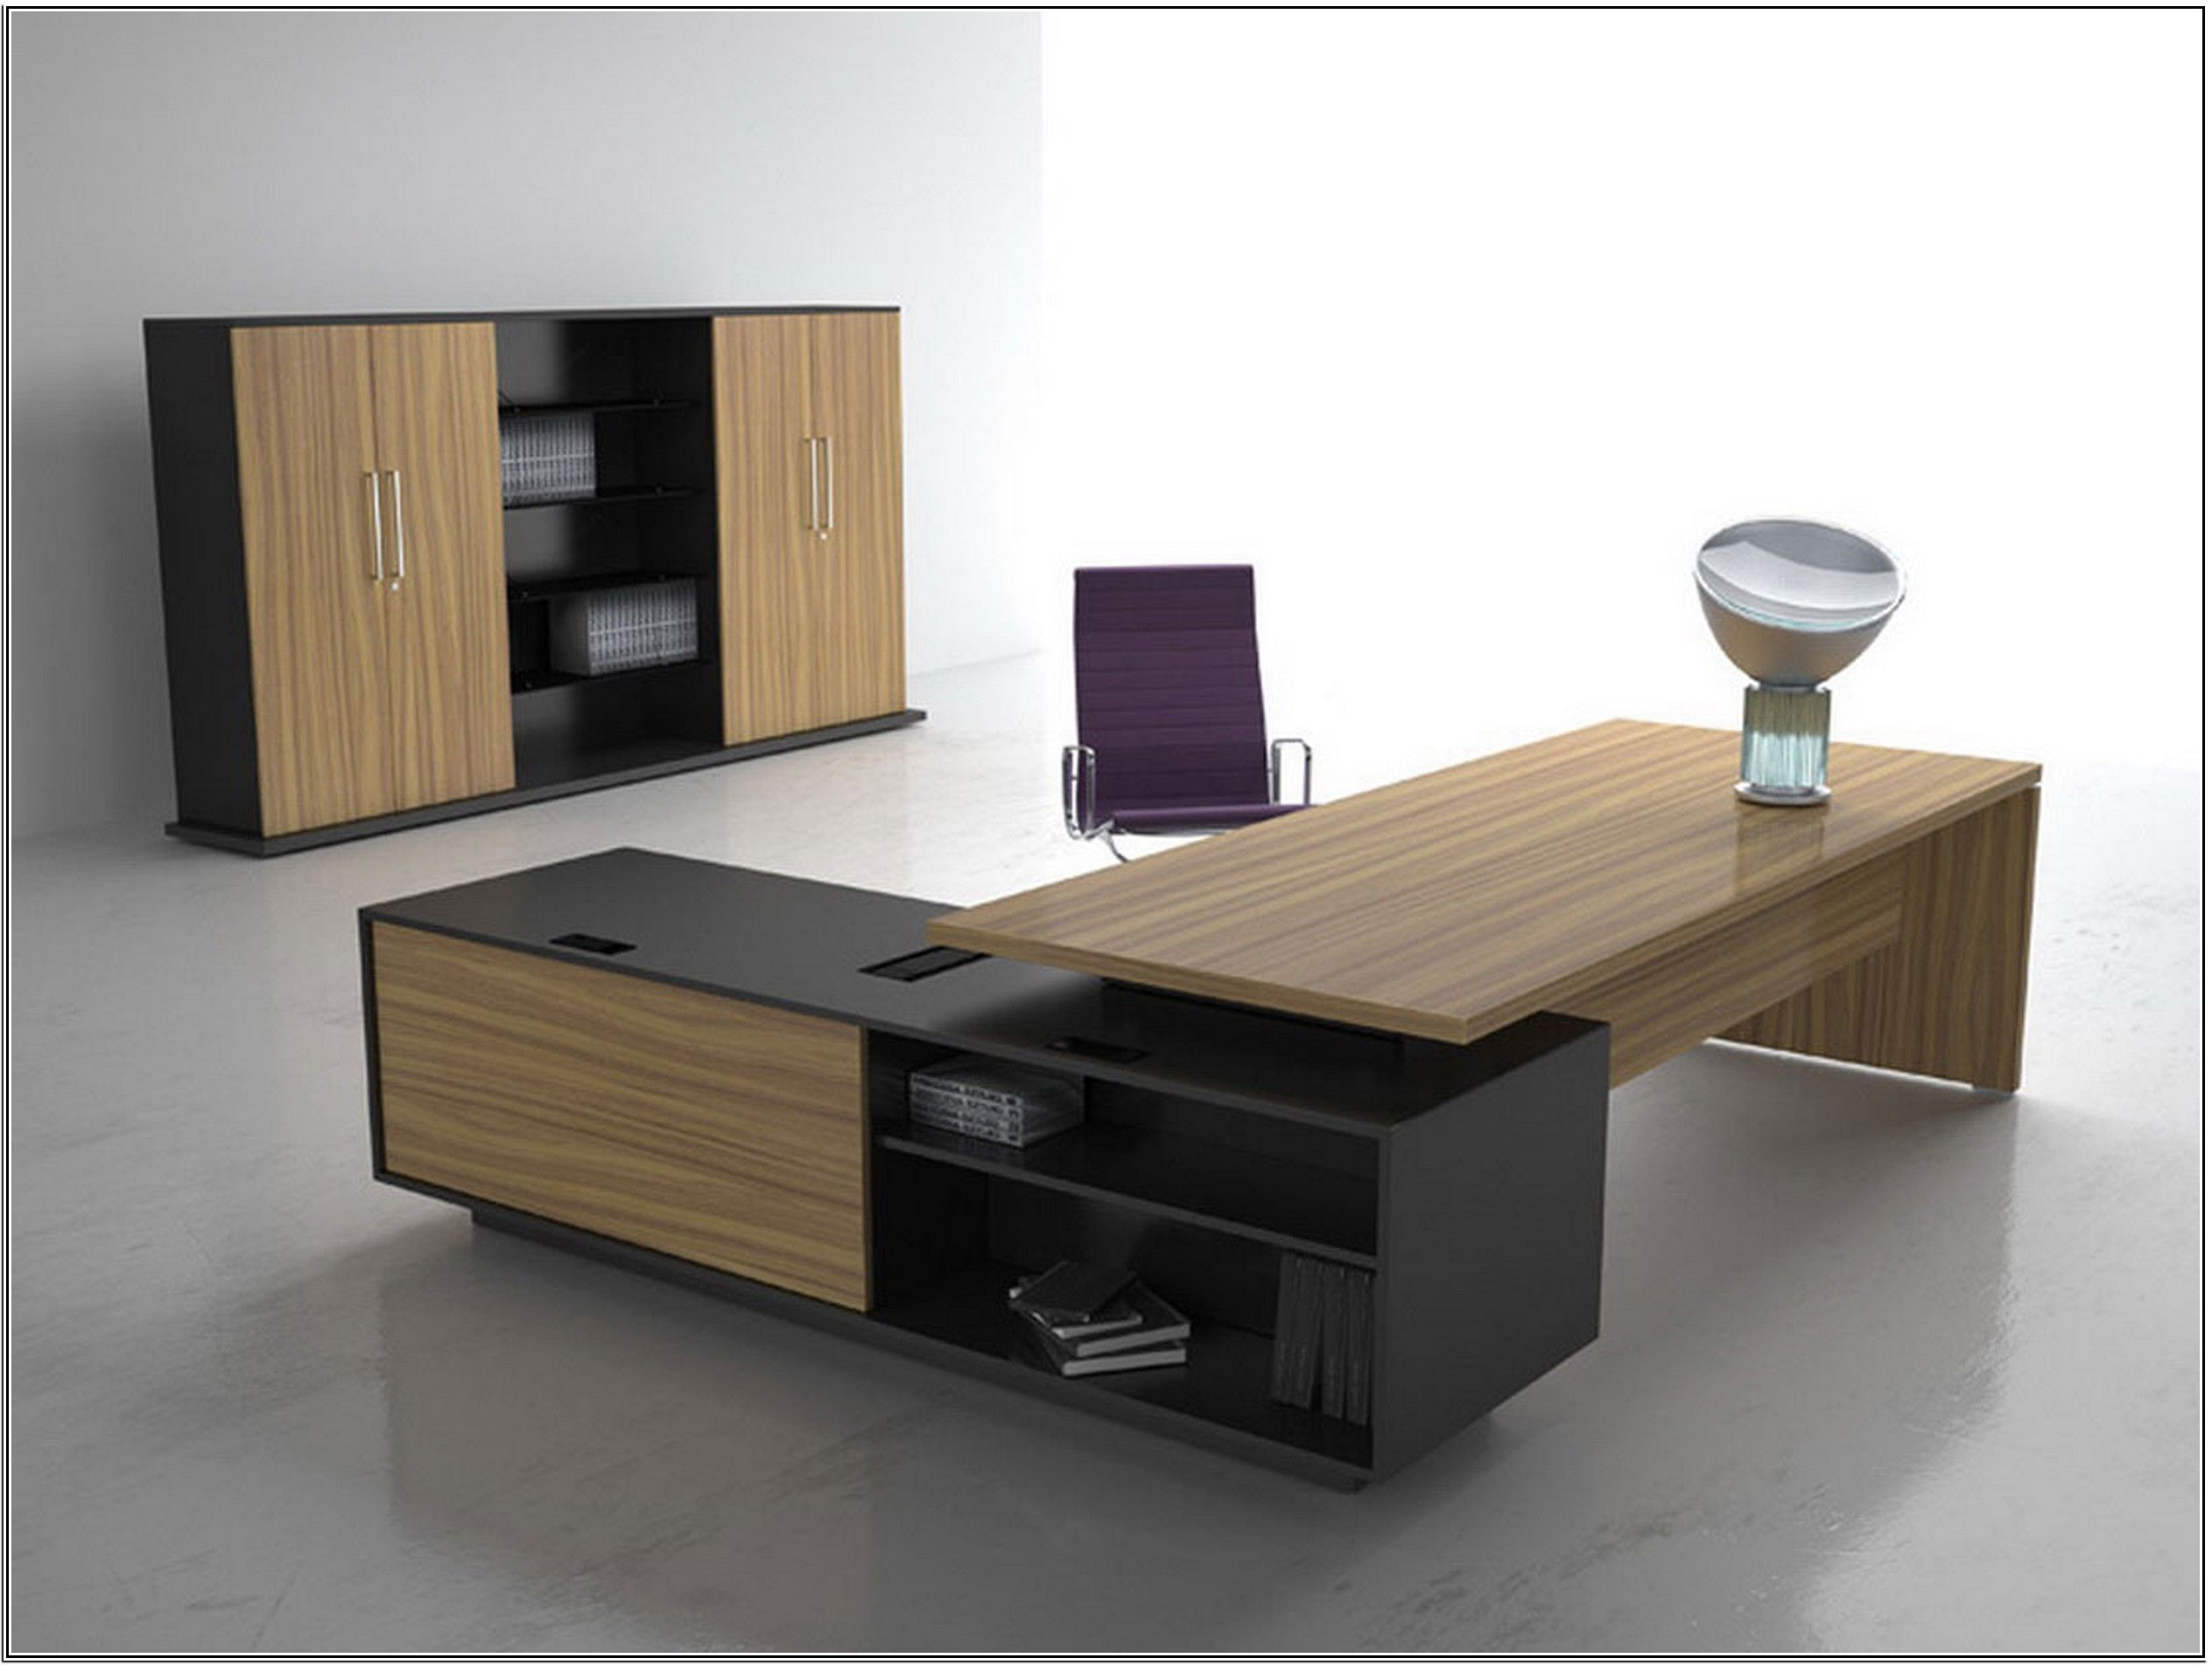 Modern Wood Office Furniture wood office tables amusing in interior design ideas for home design with wood office tables home 17 Best Images About Reception Desk On Pinterest Receptions Luxury Modern Homes And Offices